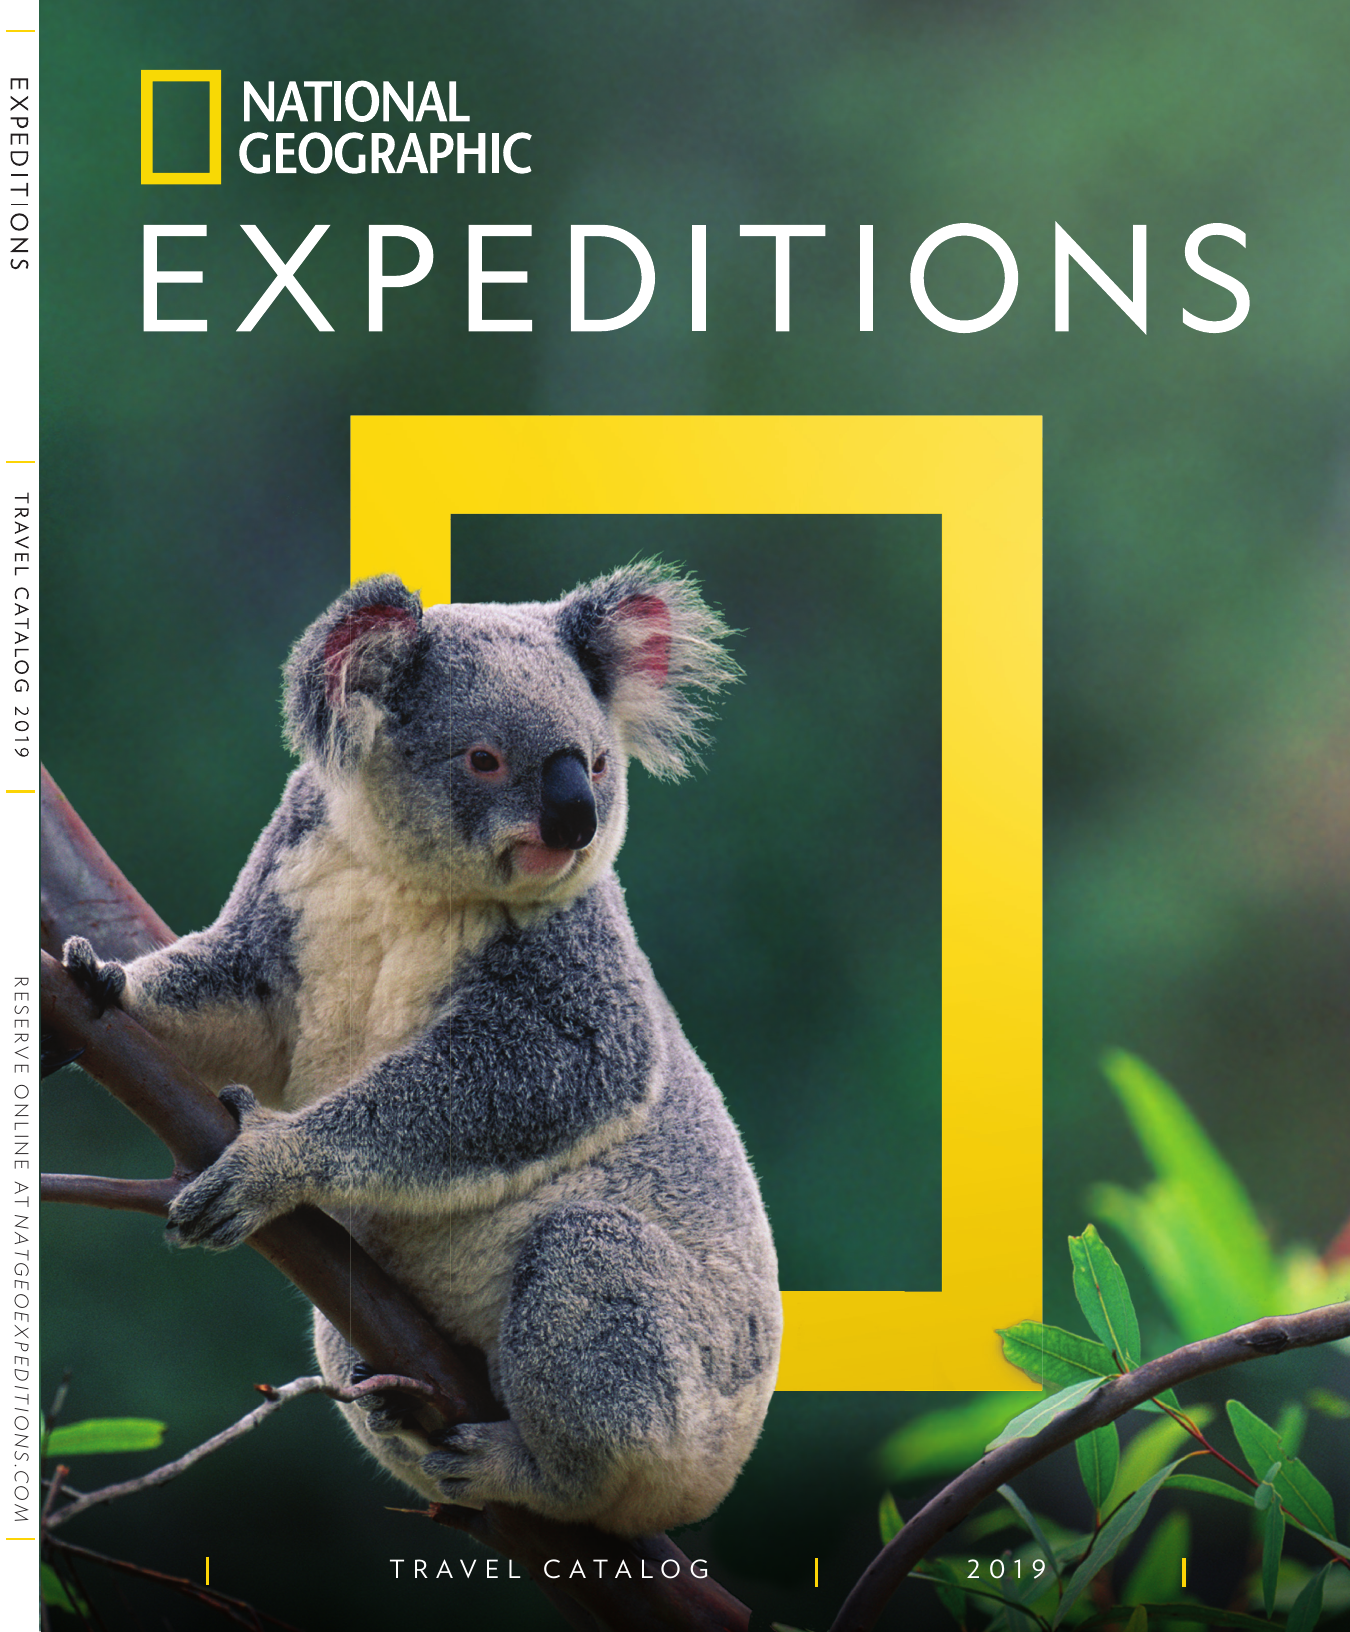 National Geographic Expeditions Travel Catalog 2019 f081233b2b